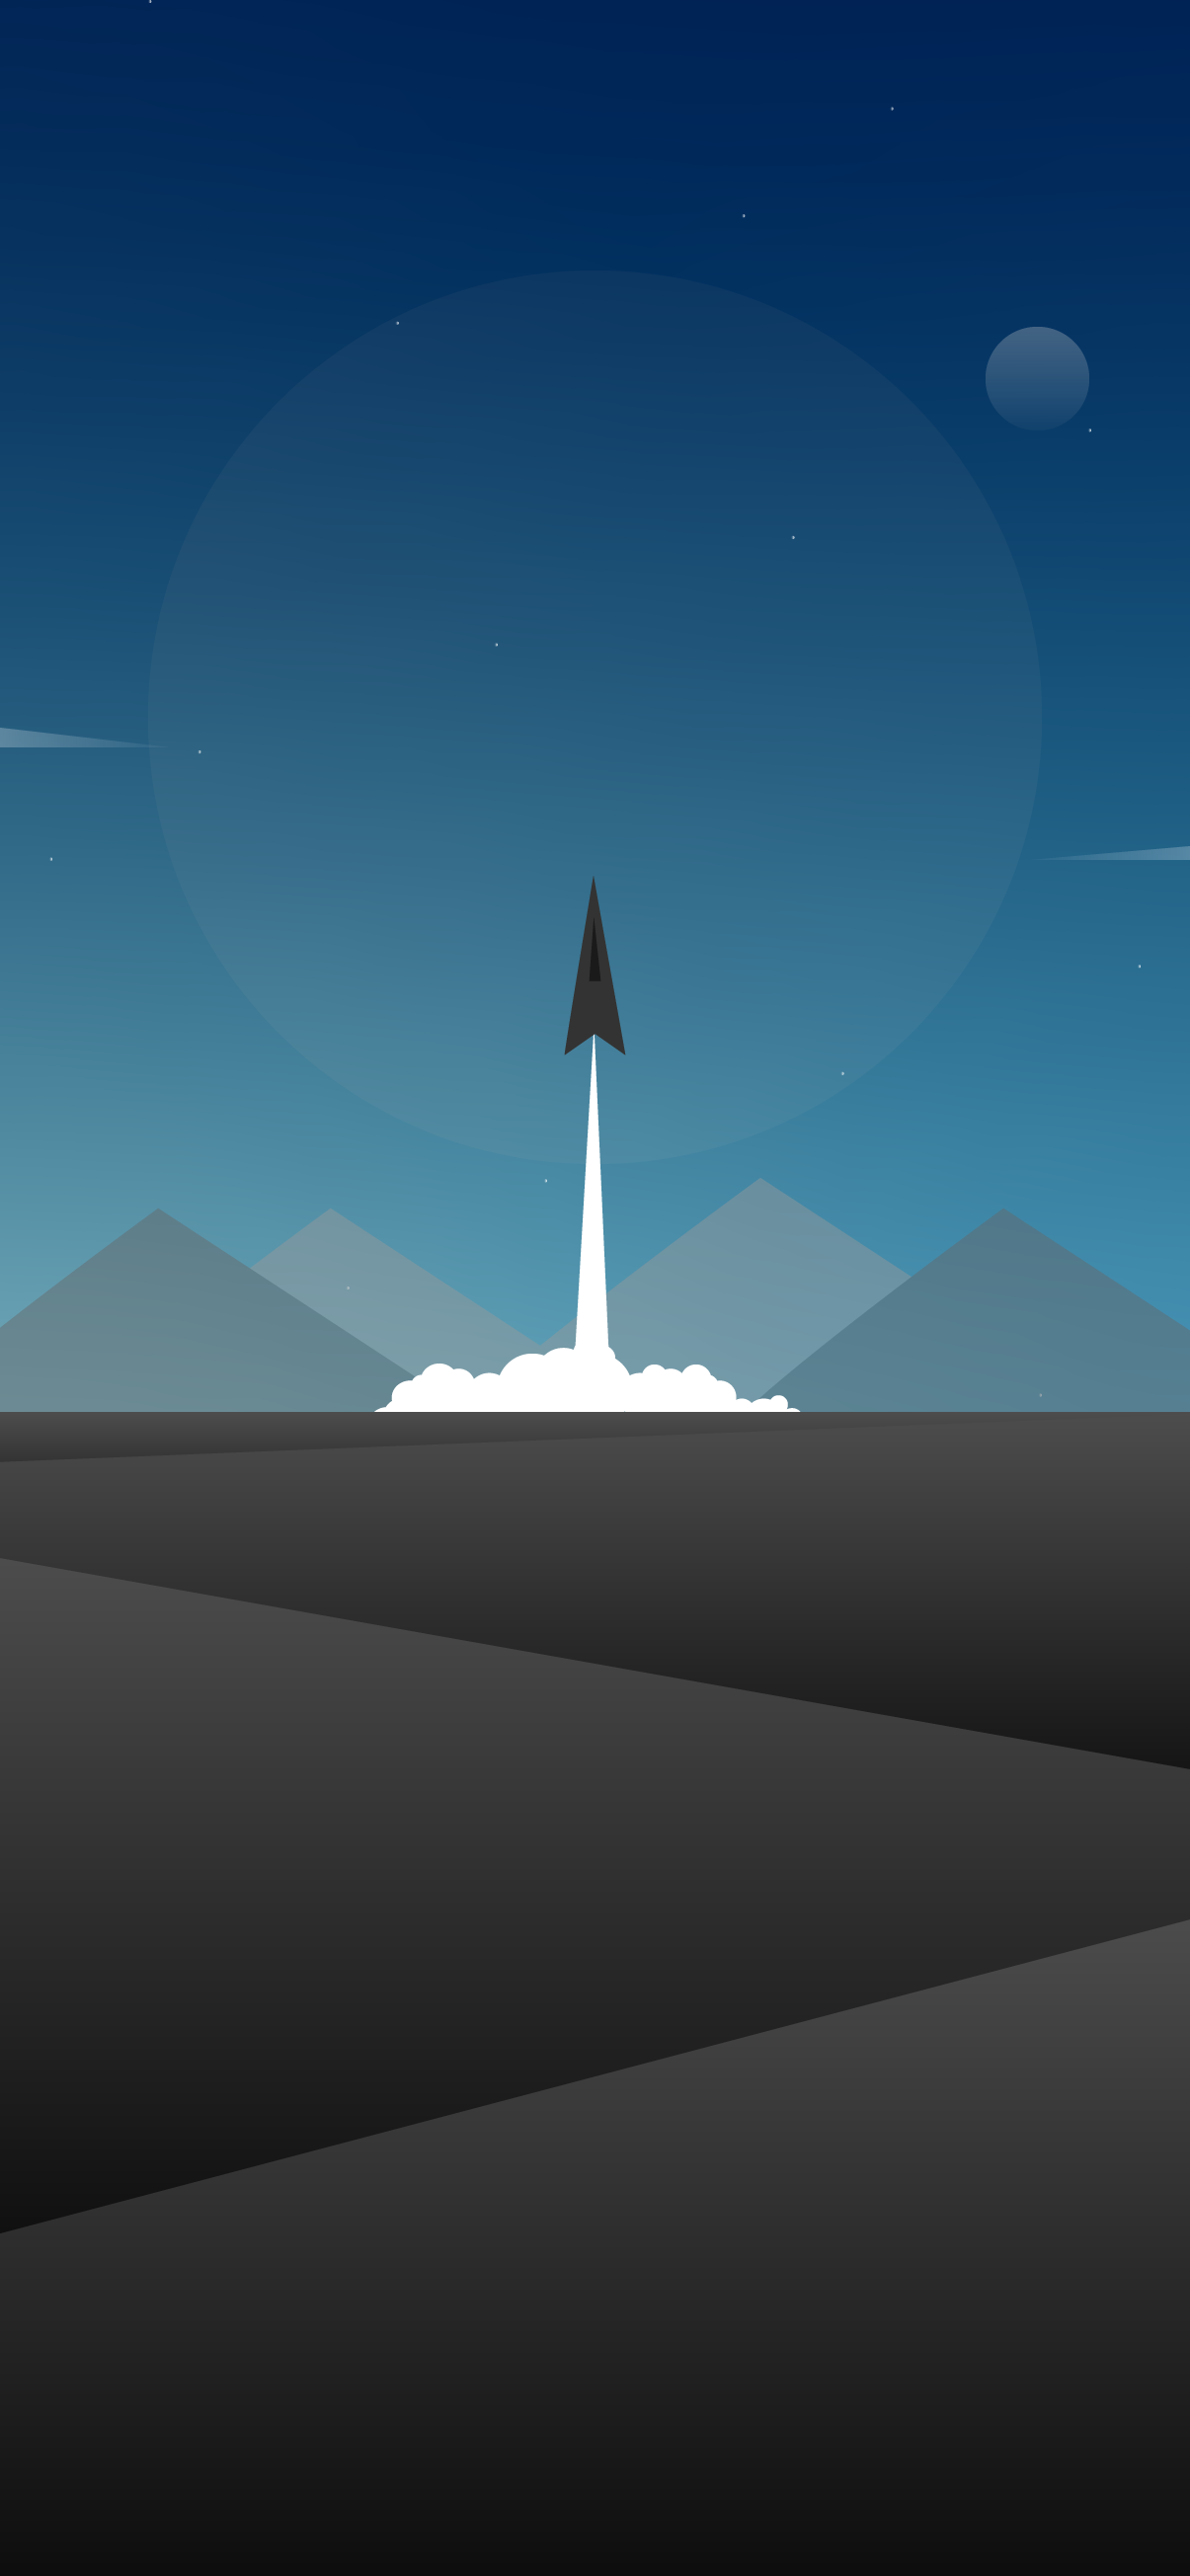 beautiful minimalist and cool wallpaper for mobile phone of a rocket lauch